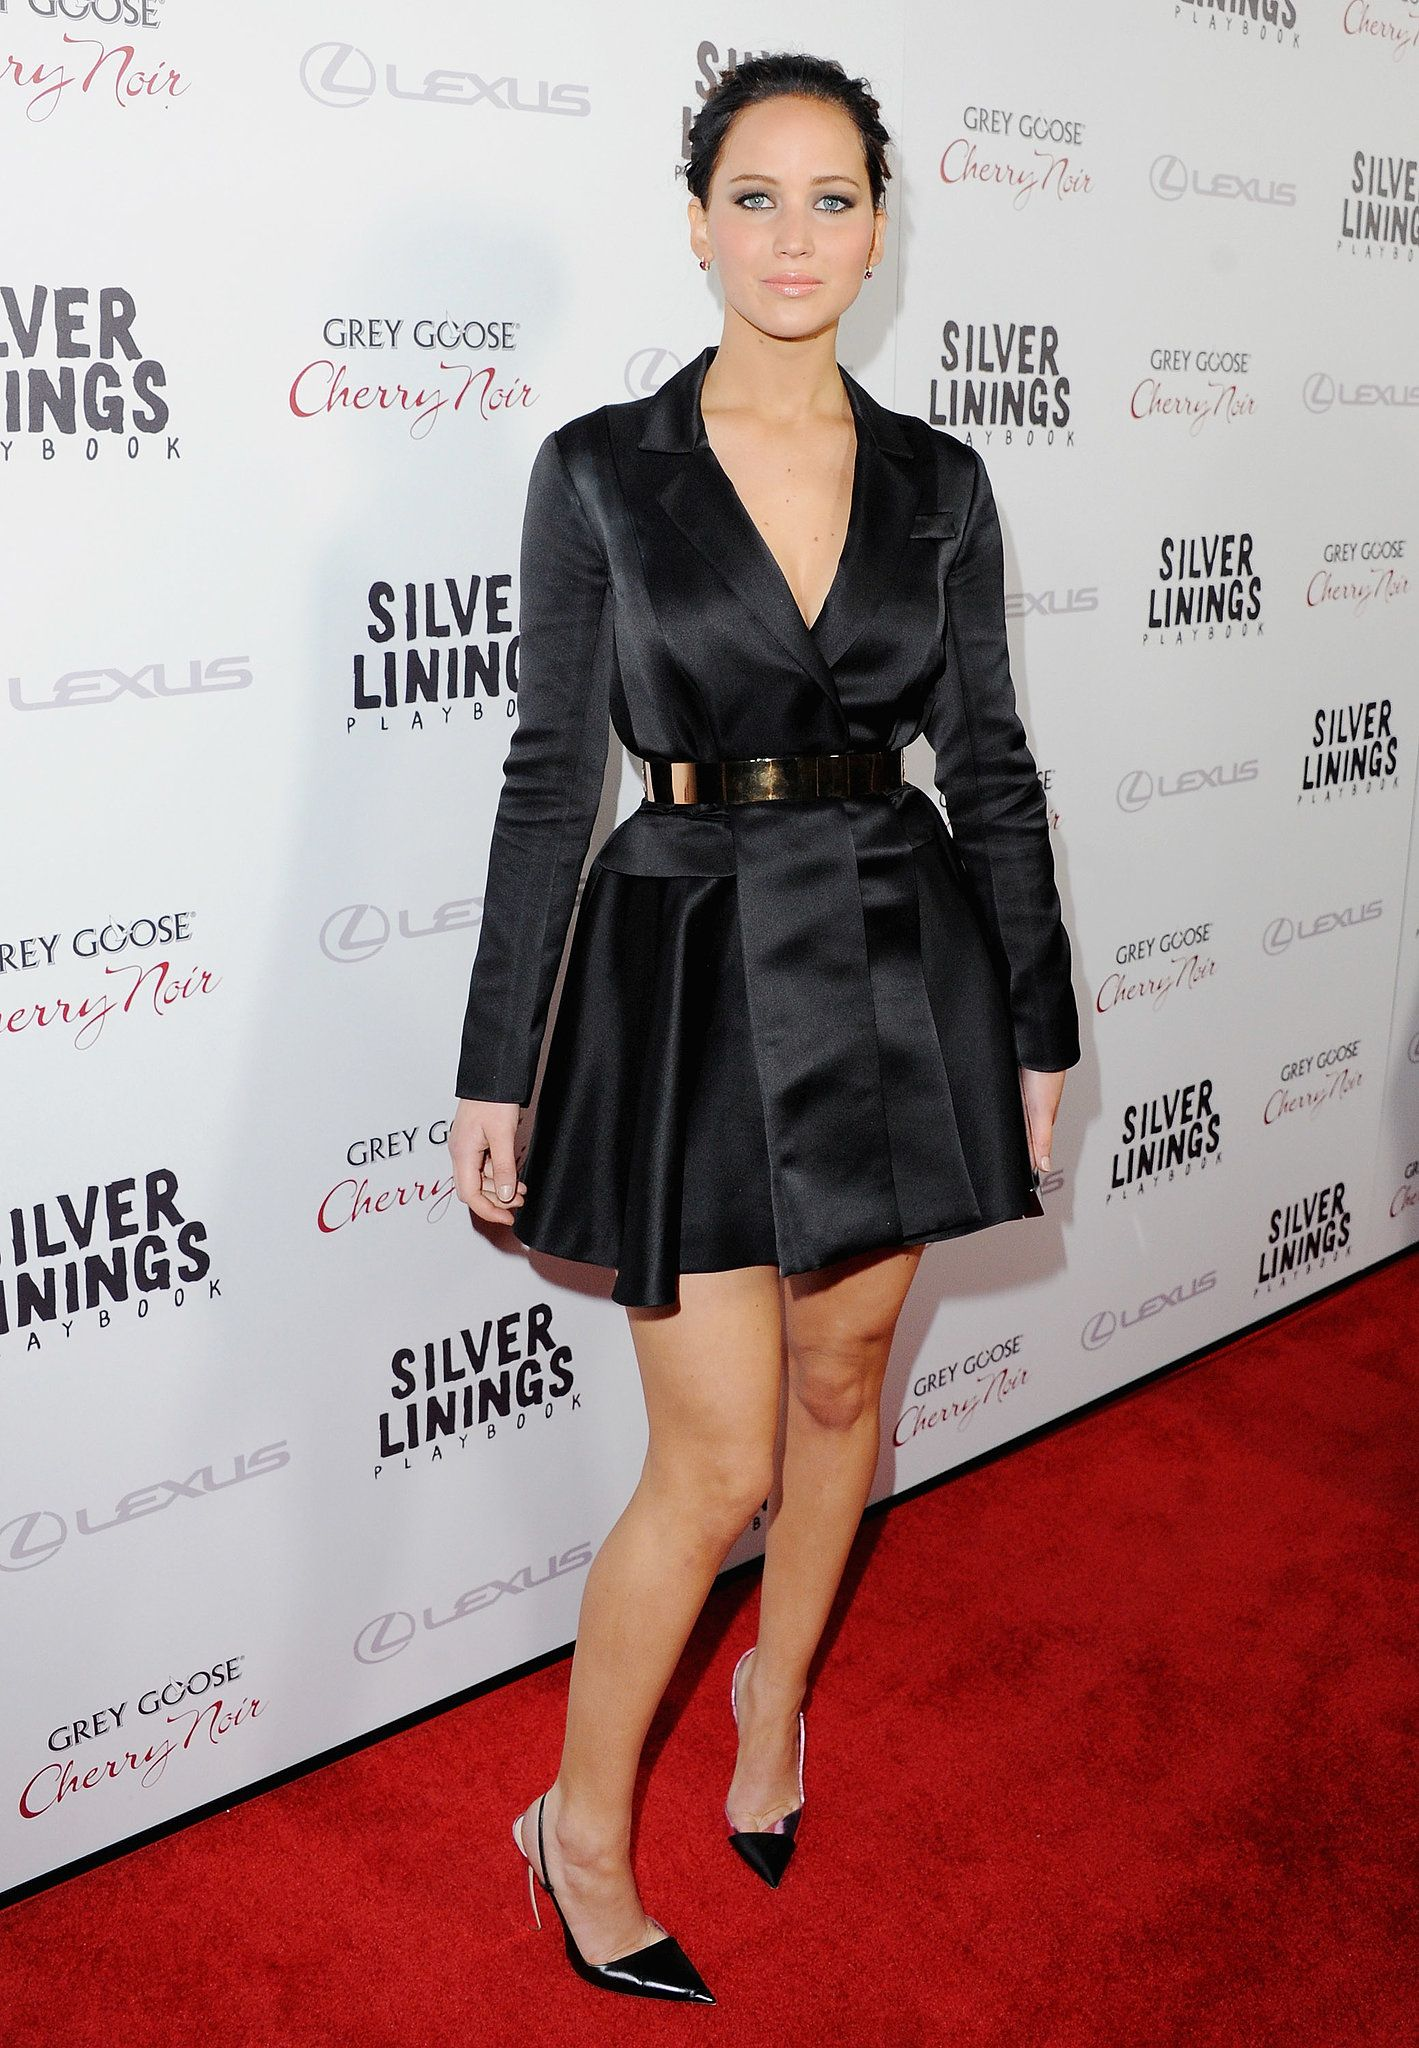 At the LA premiere of Silver Linings Playbook Jennifer Lawrence